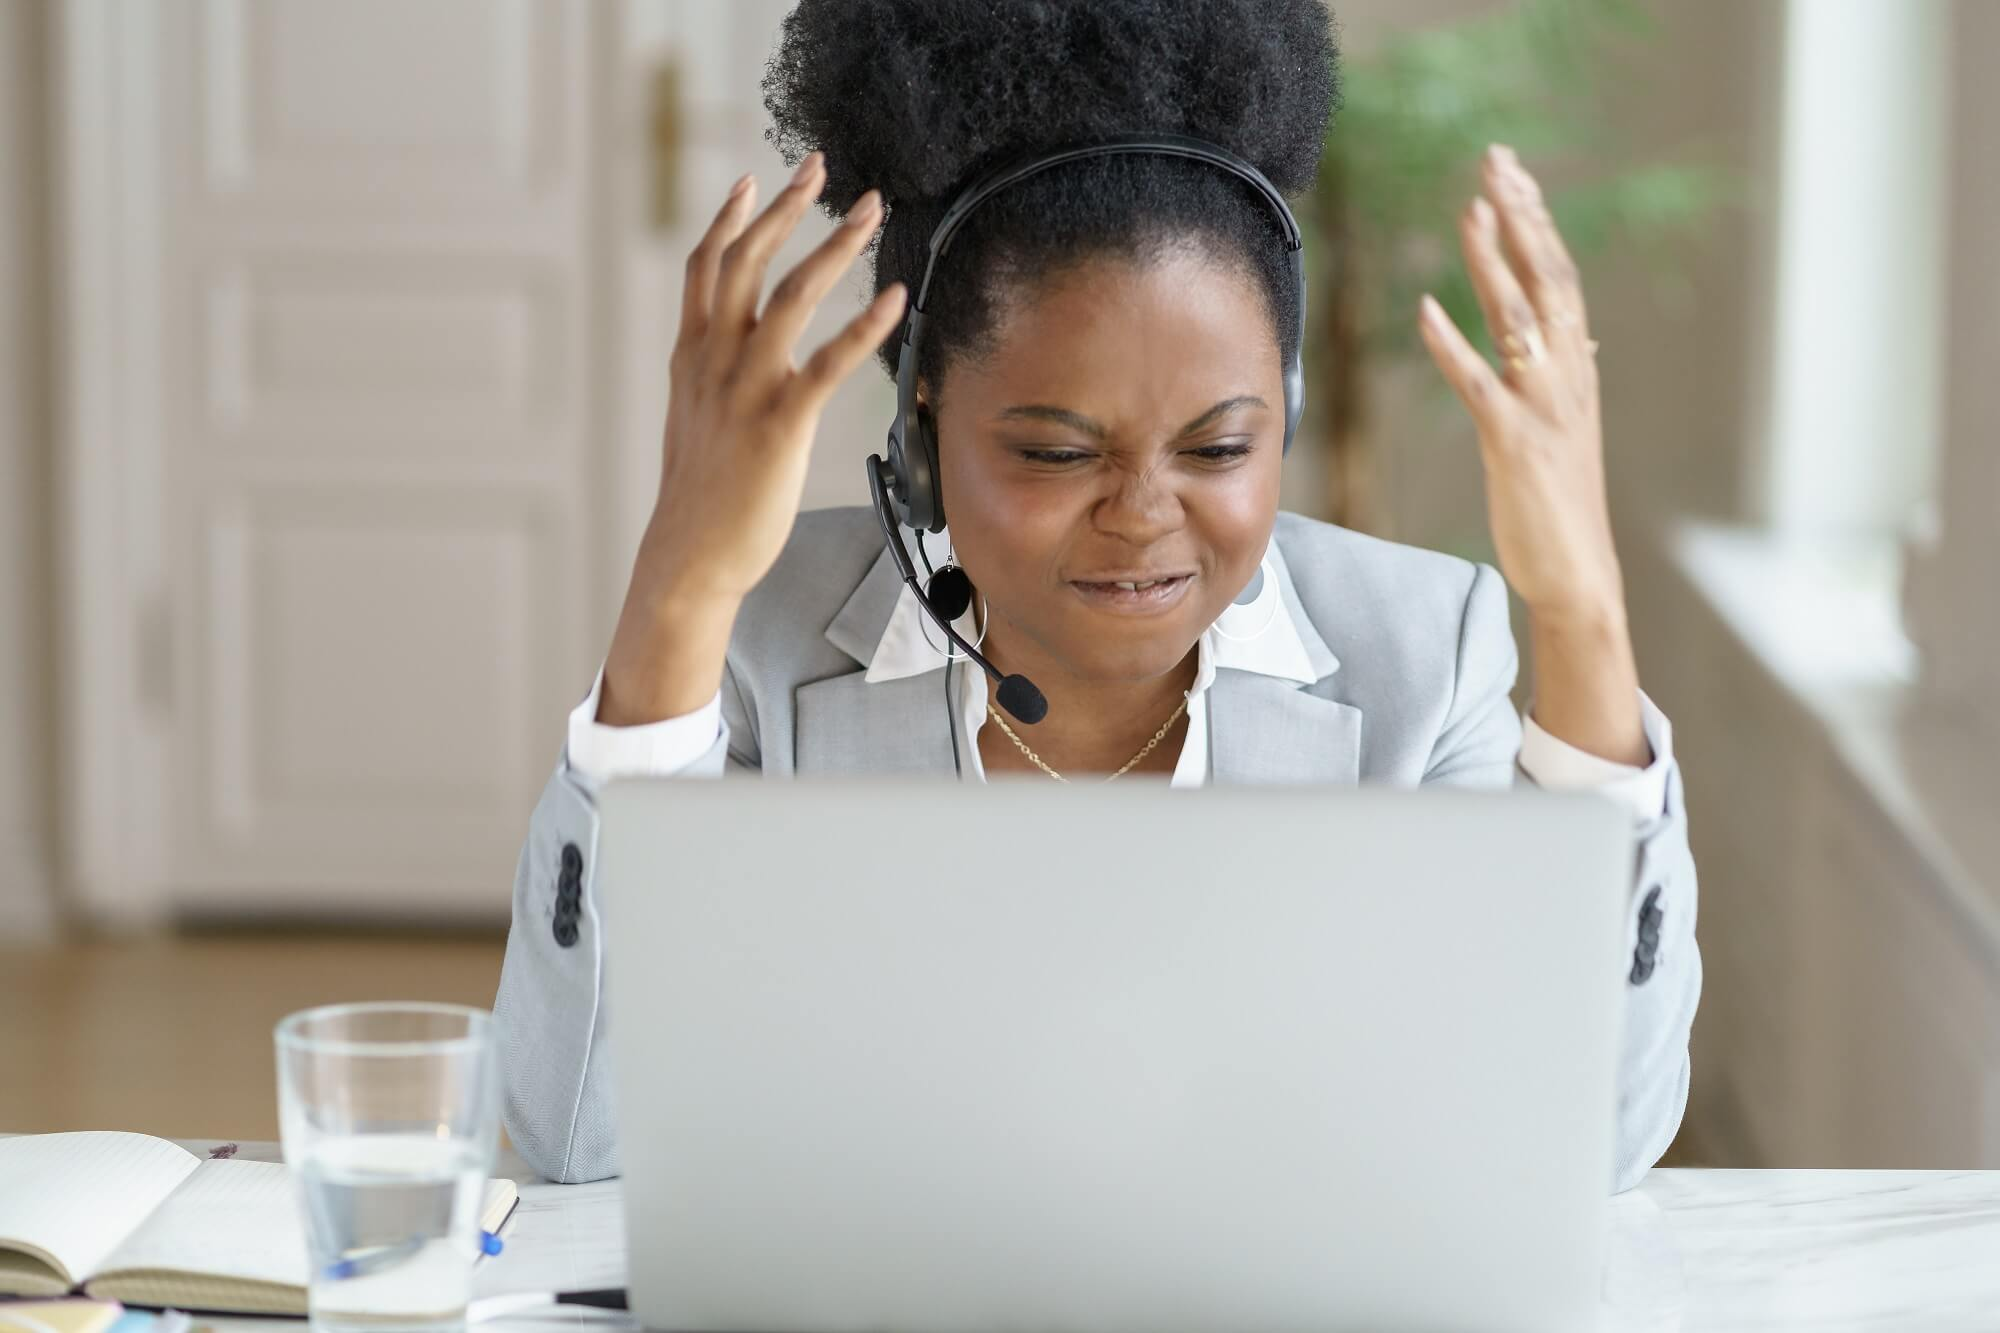 how to handle difficult customer over phone